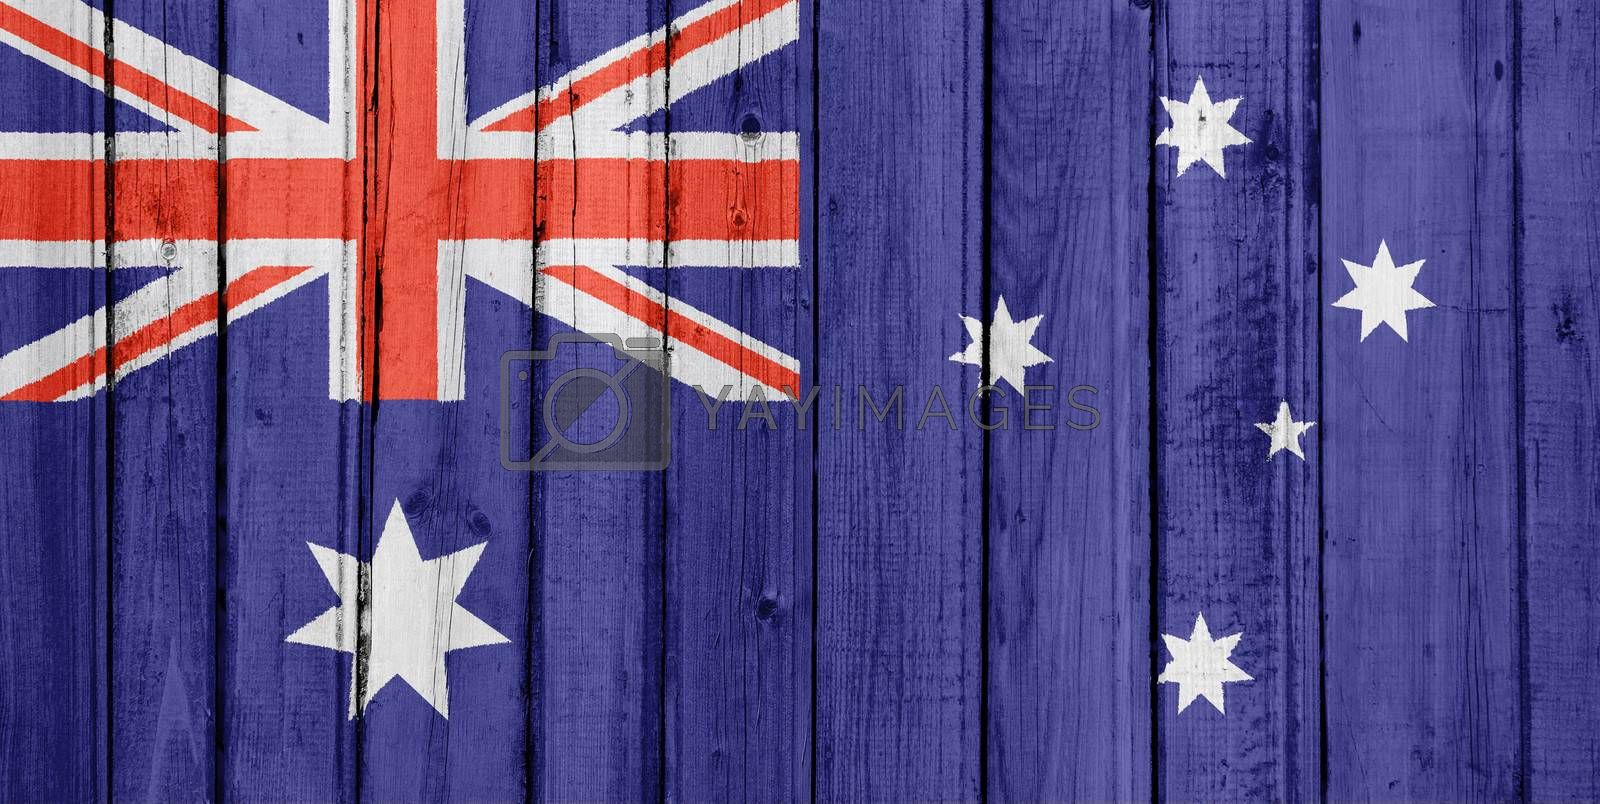 The Australian flag painted on a wooden fence